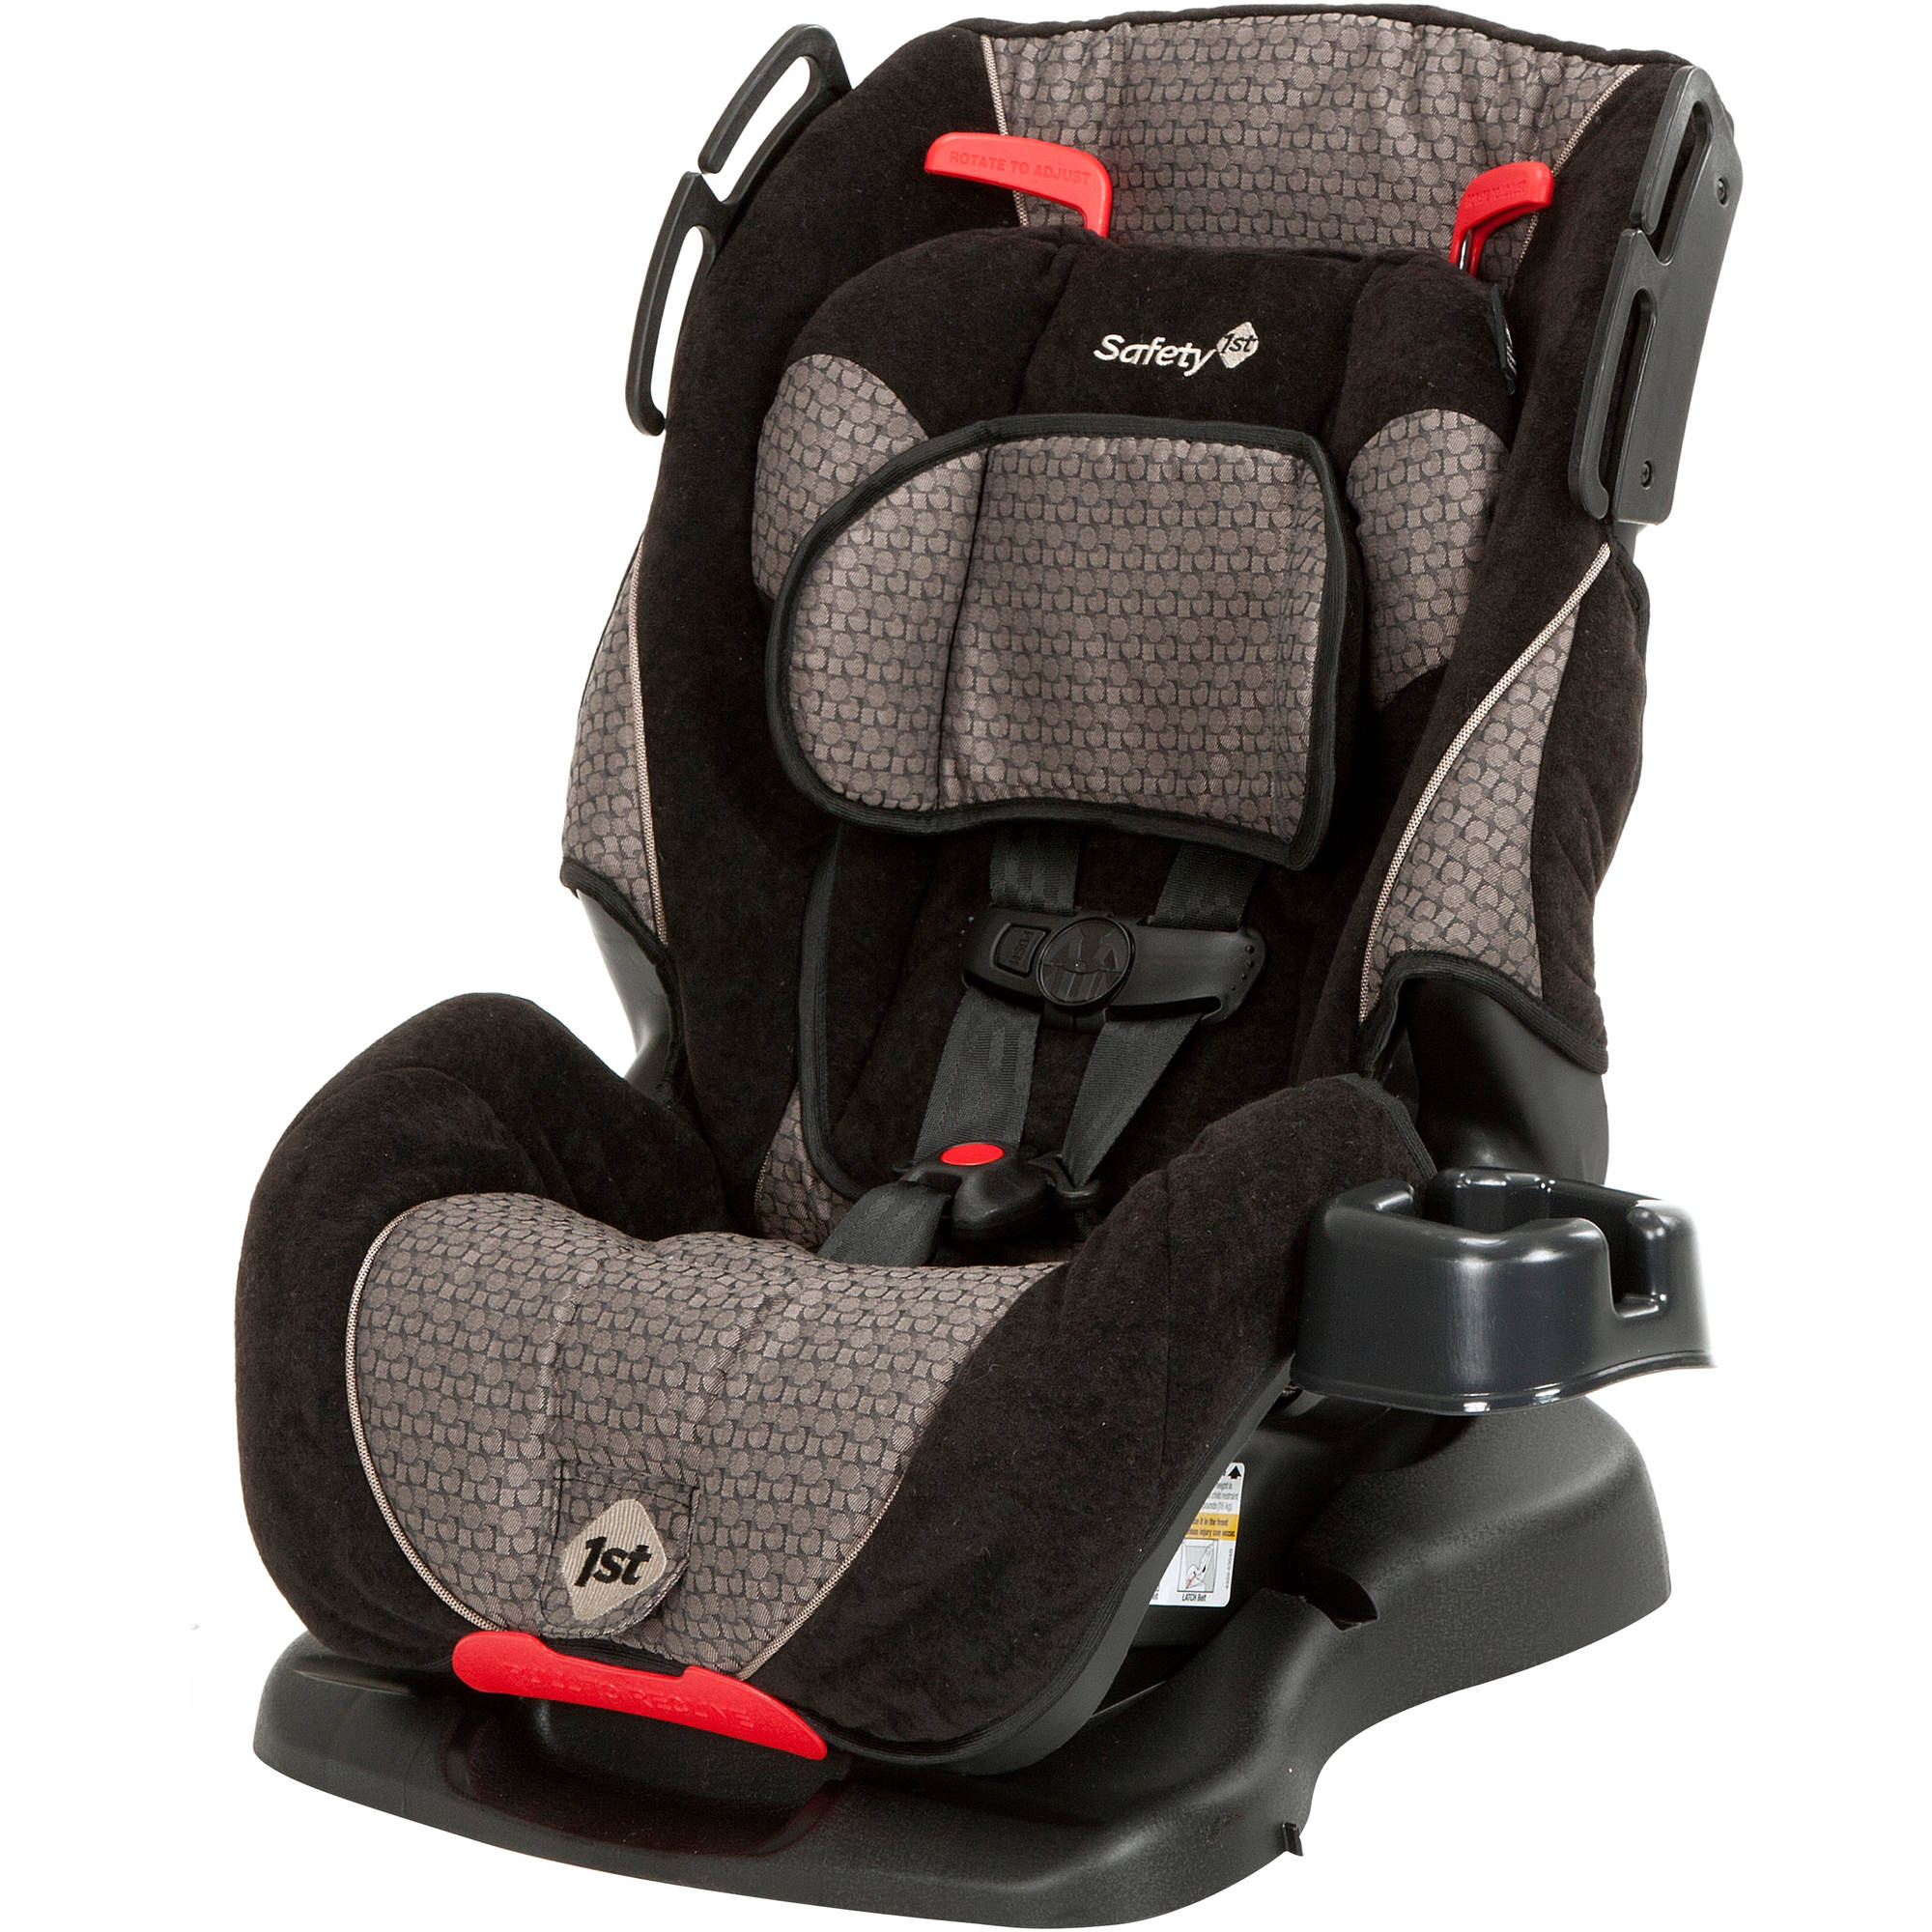 Safety 1st All-in-One Convertible Car Seat, Dorian